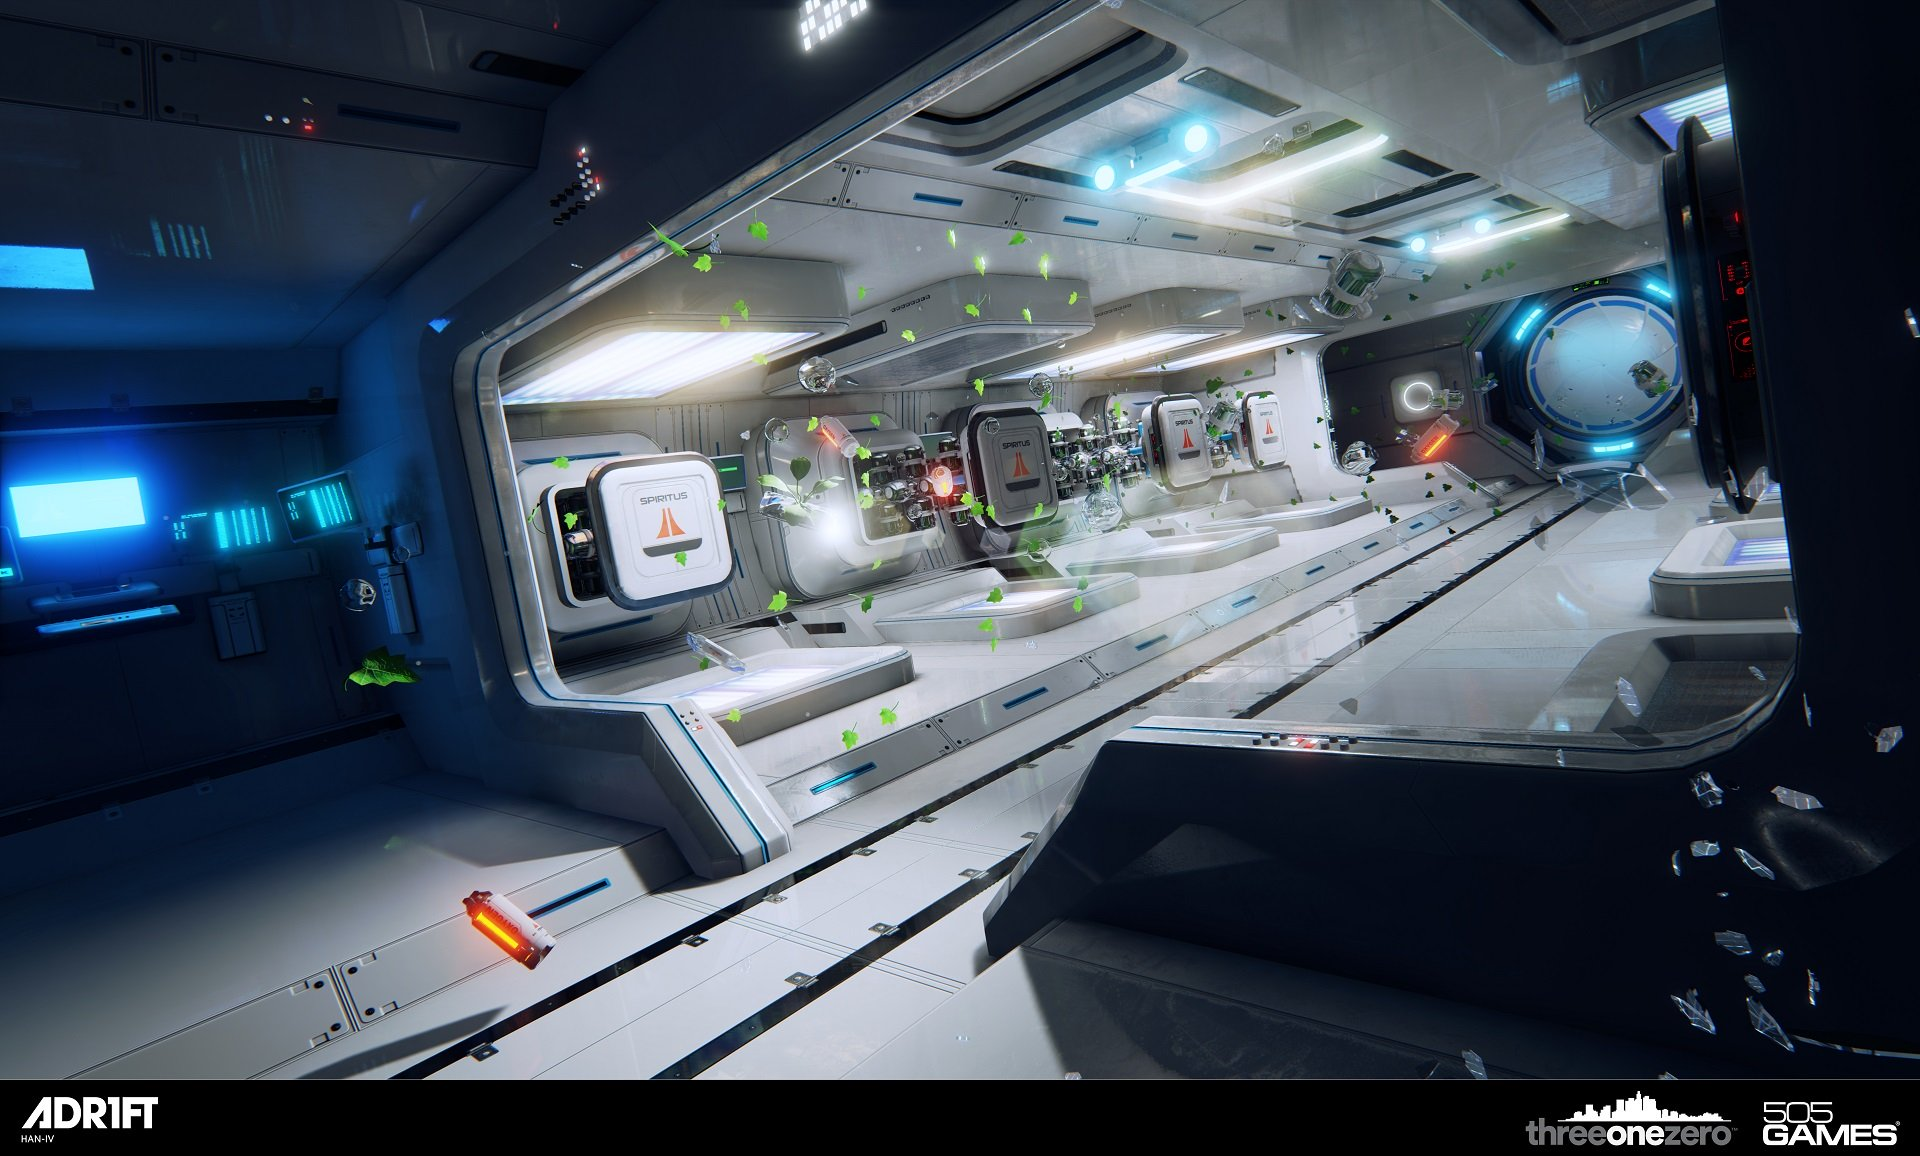 ADR1FT Screenshot 05